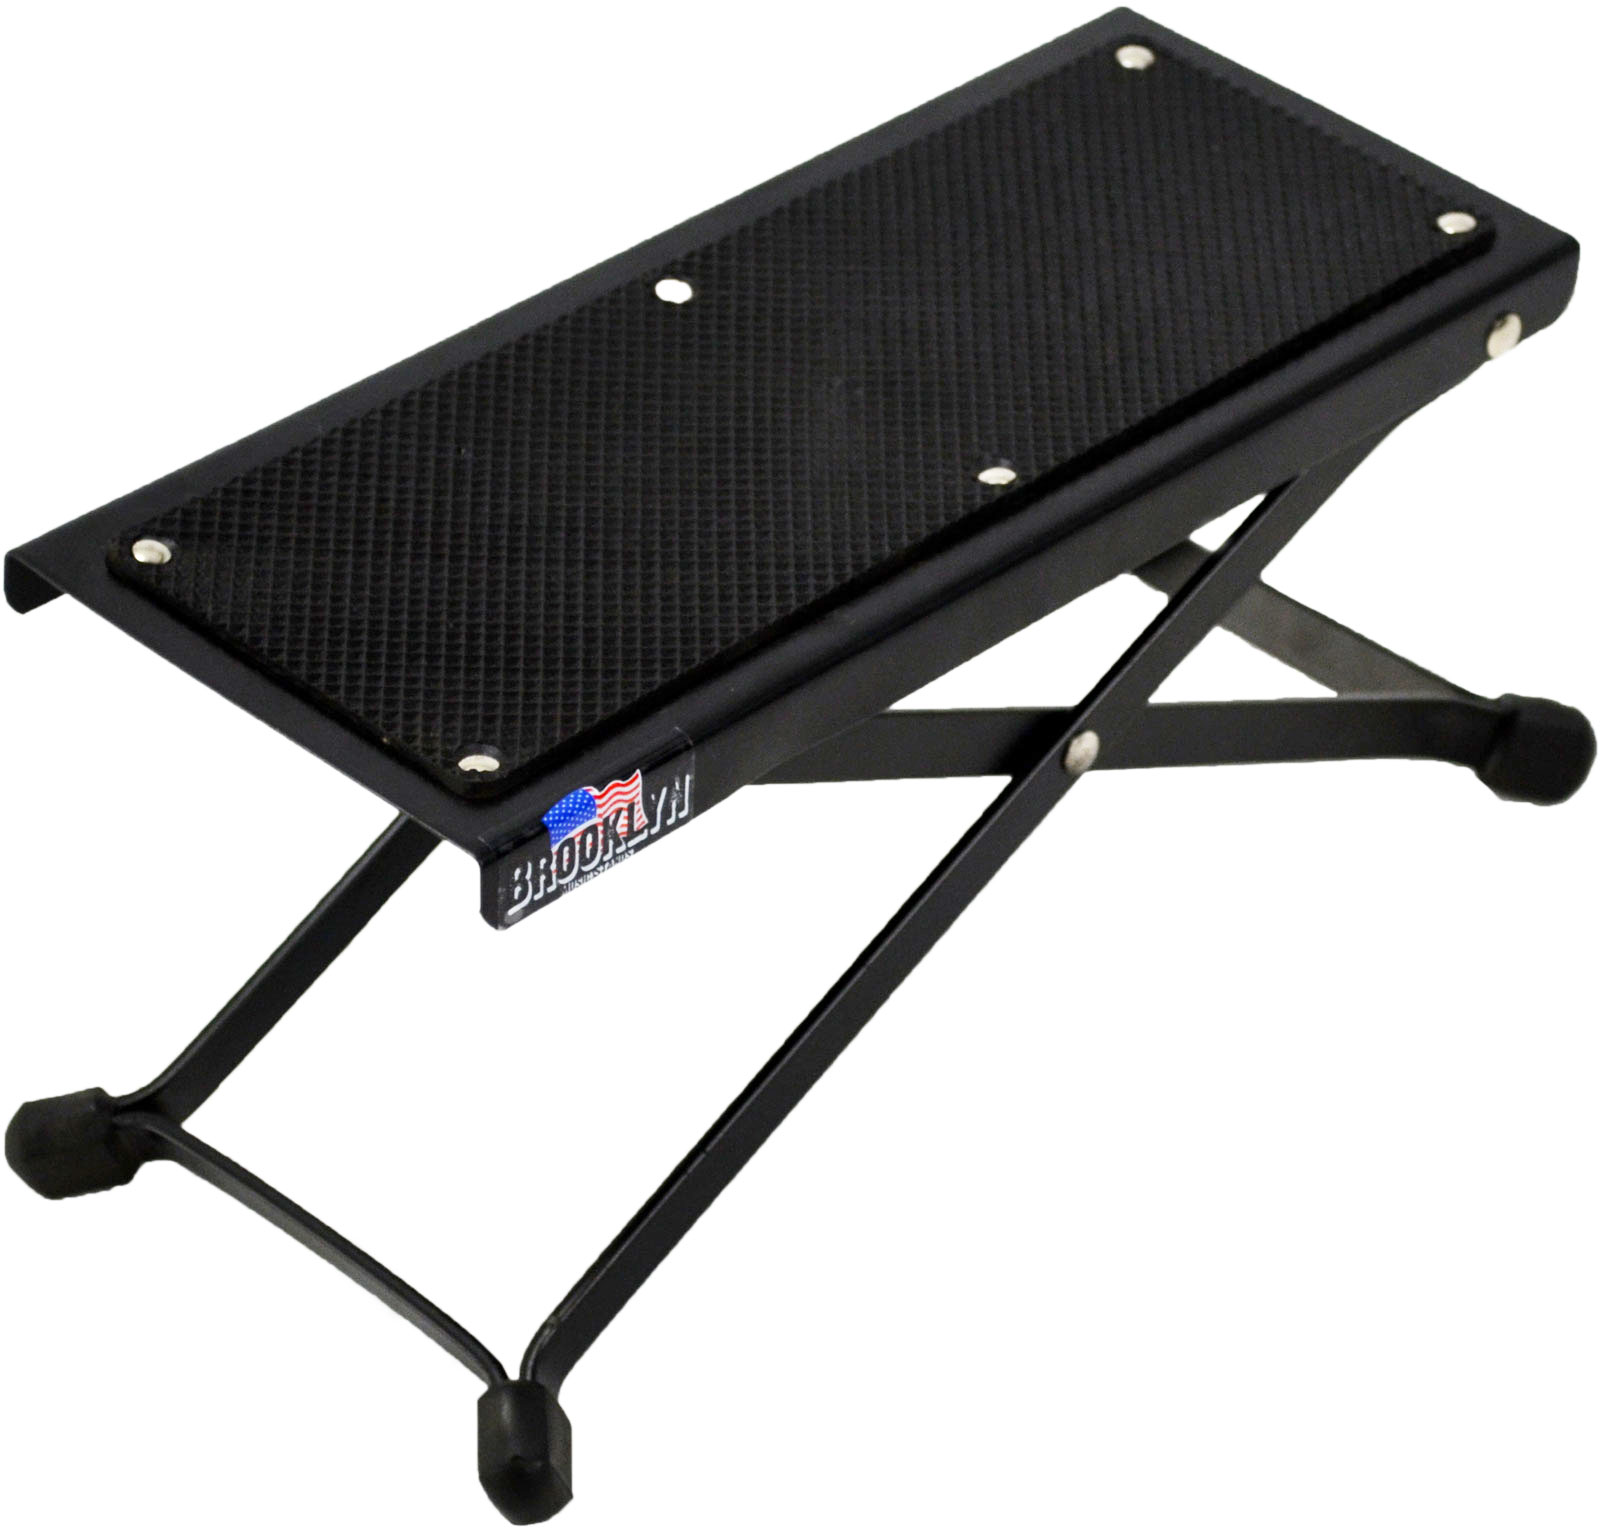 Admirable Keymusic Hardware Bmfs1 Adjustable Guitarist Foot Stool Ocoug Best Dining Table And Chair Ideas Images Ocougorg